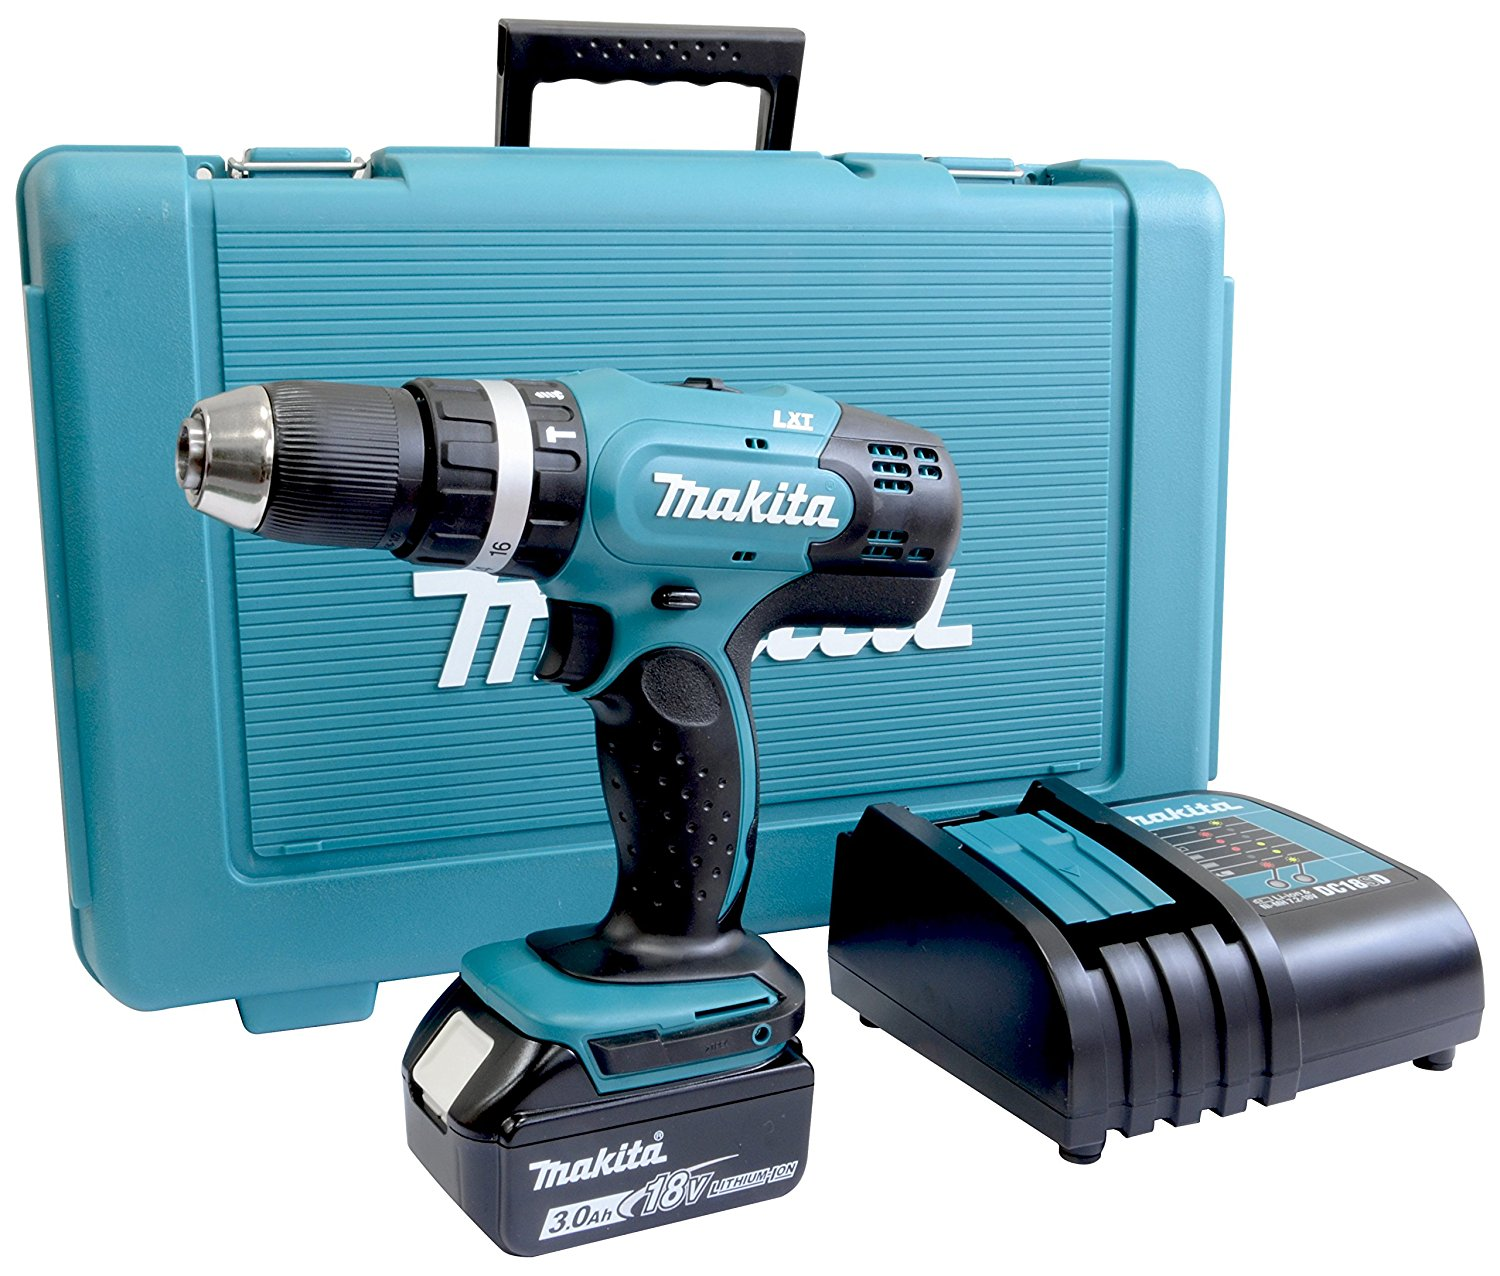 Makita DHP459RMJ 18v Cordless 13mm Brushless 2-Speed Combi Drill inc 2x 4.0Ah Batts